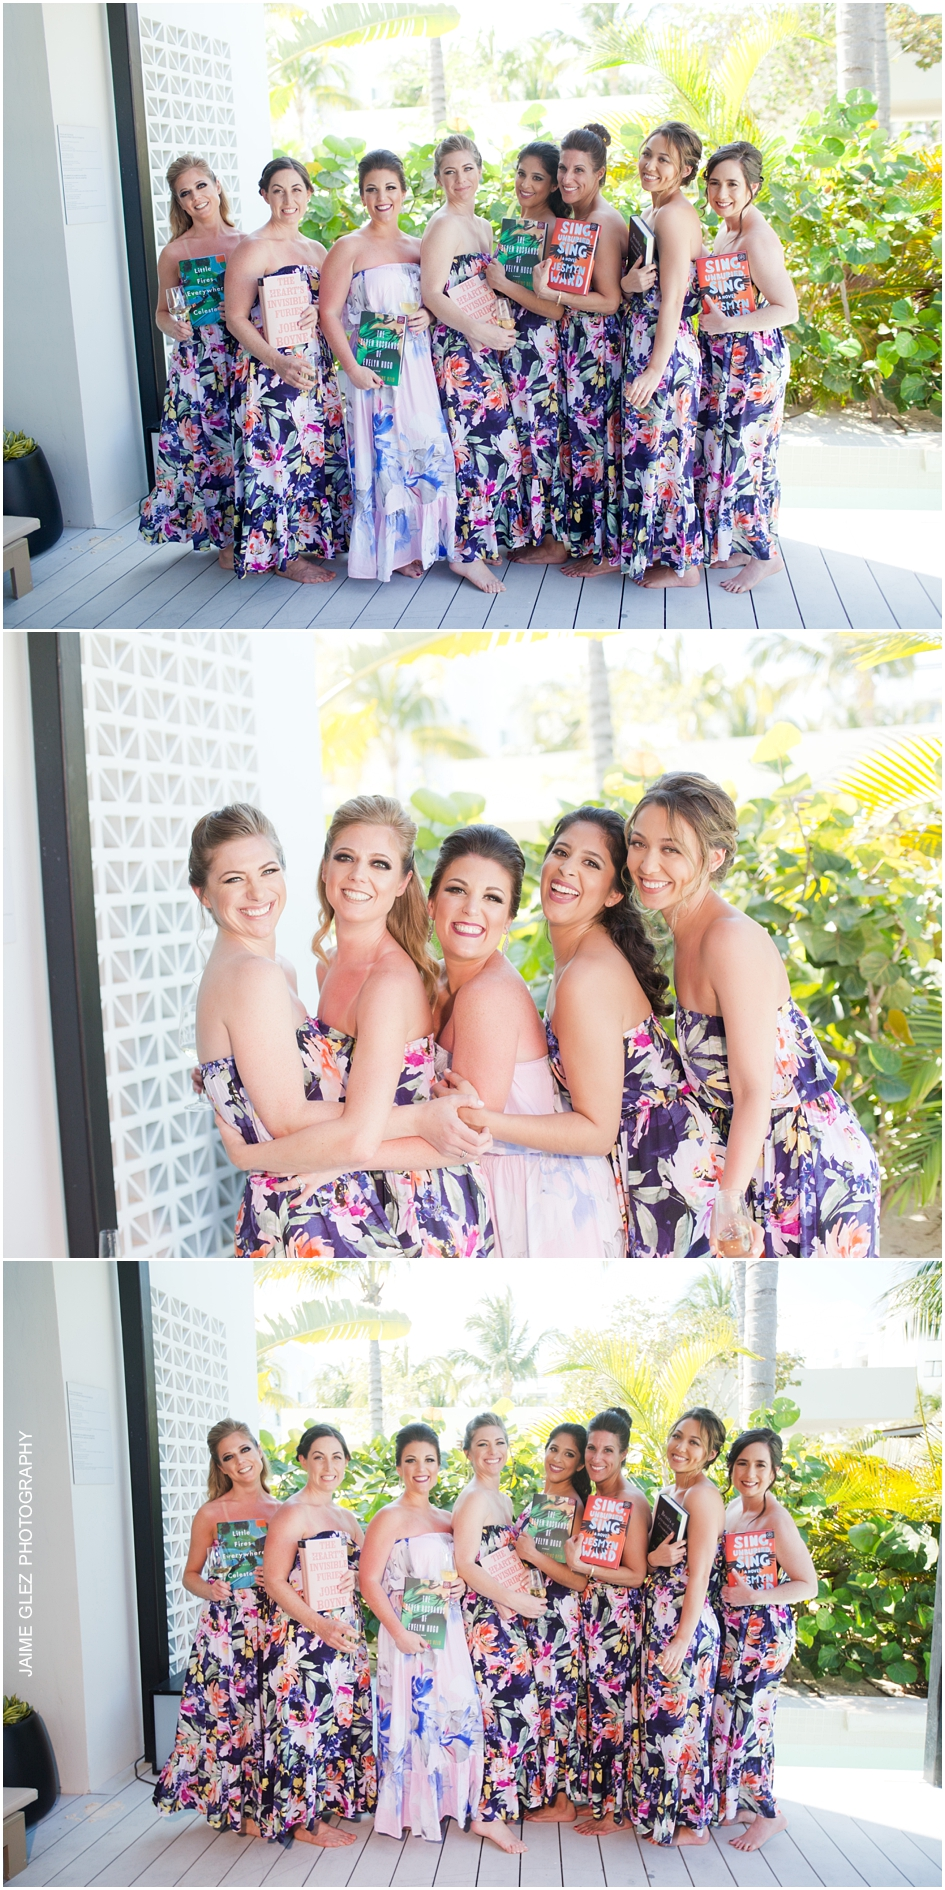 Fun and special moments of getting ready with the bride & bridesmaids.